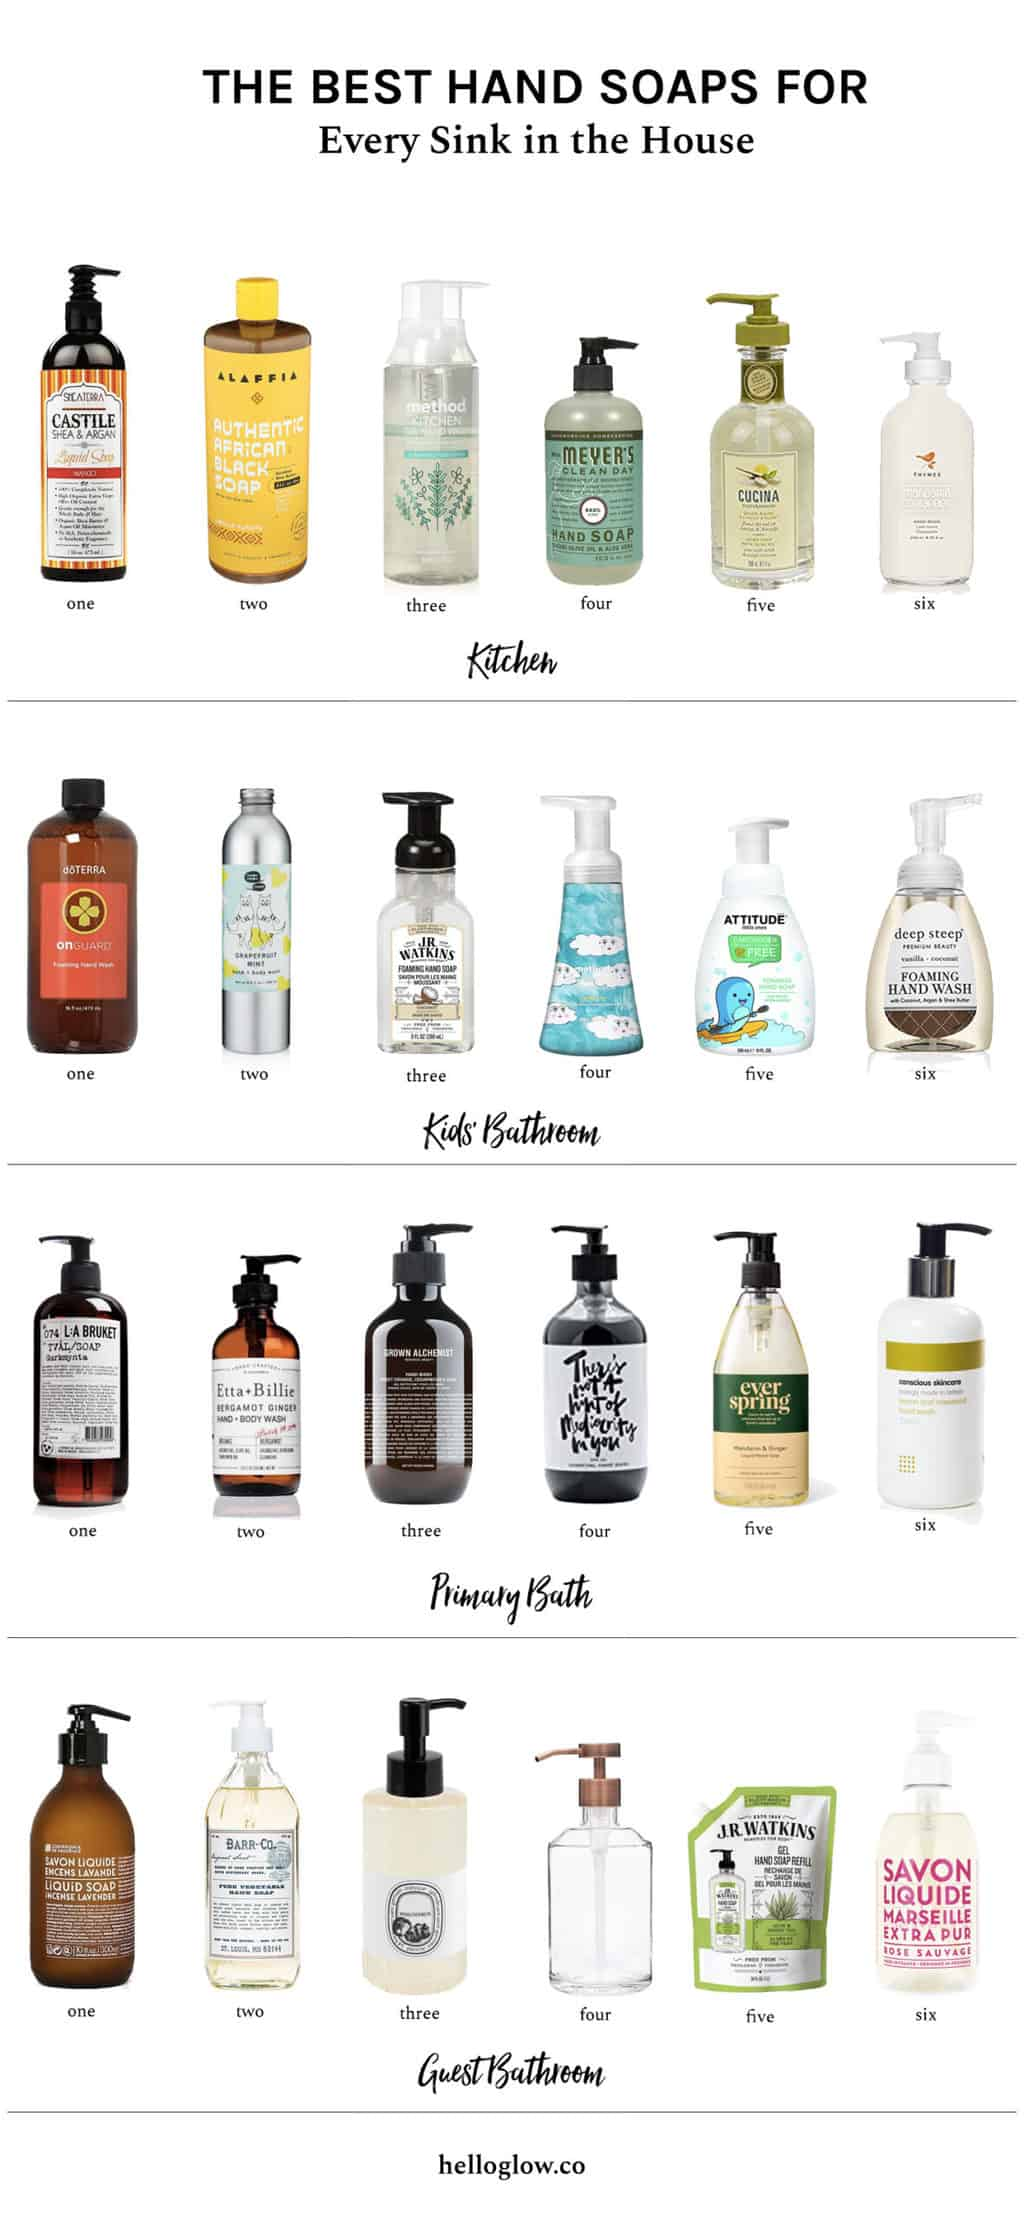 Hand Soap for Every Sink in the House - HelloGlow.co